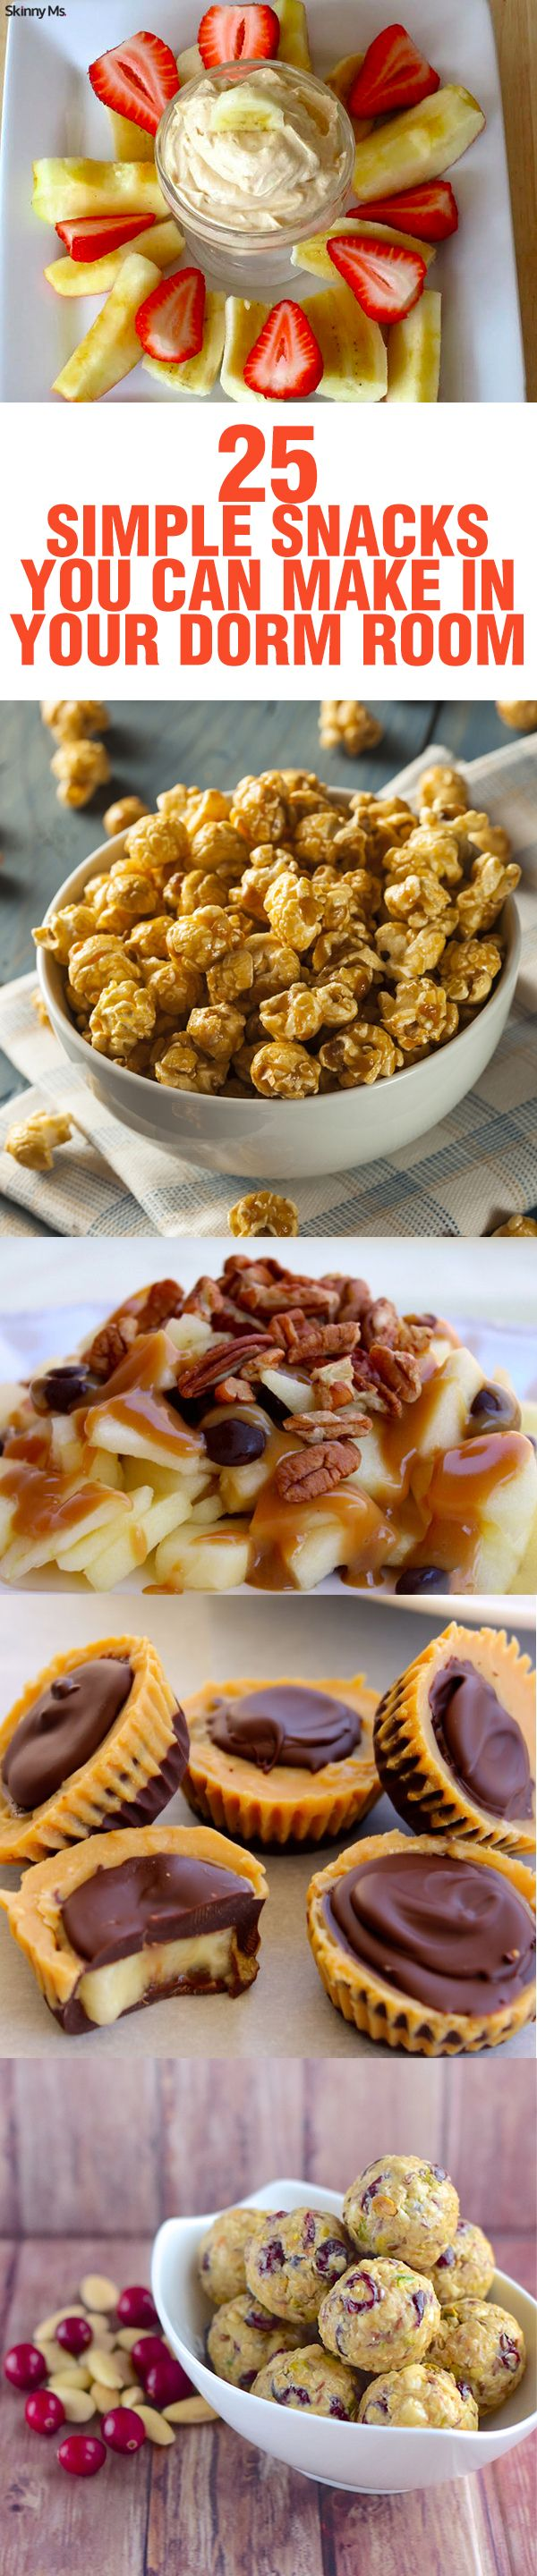 Great 25 Simple Snacks You Can Make In Your Dorm Room @skinnyms Part 20